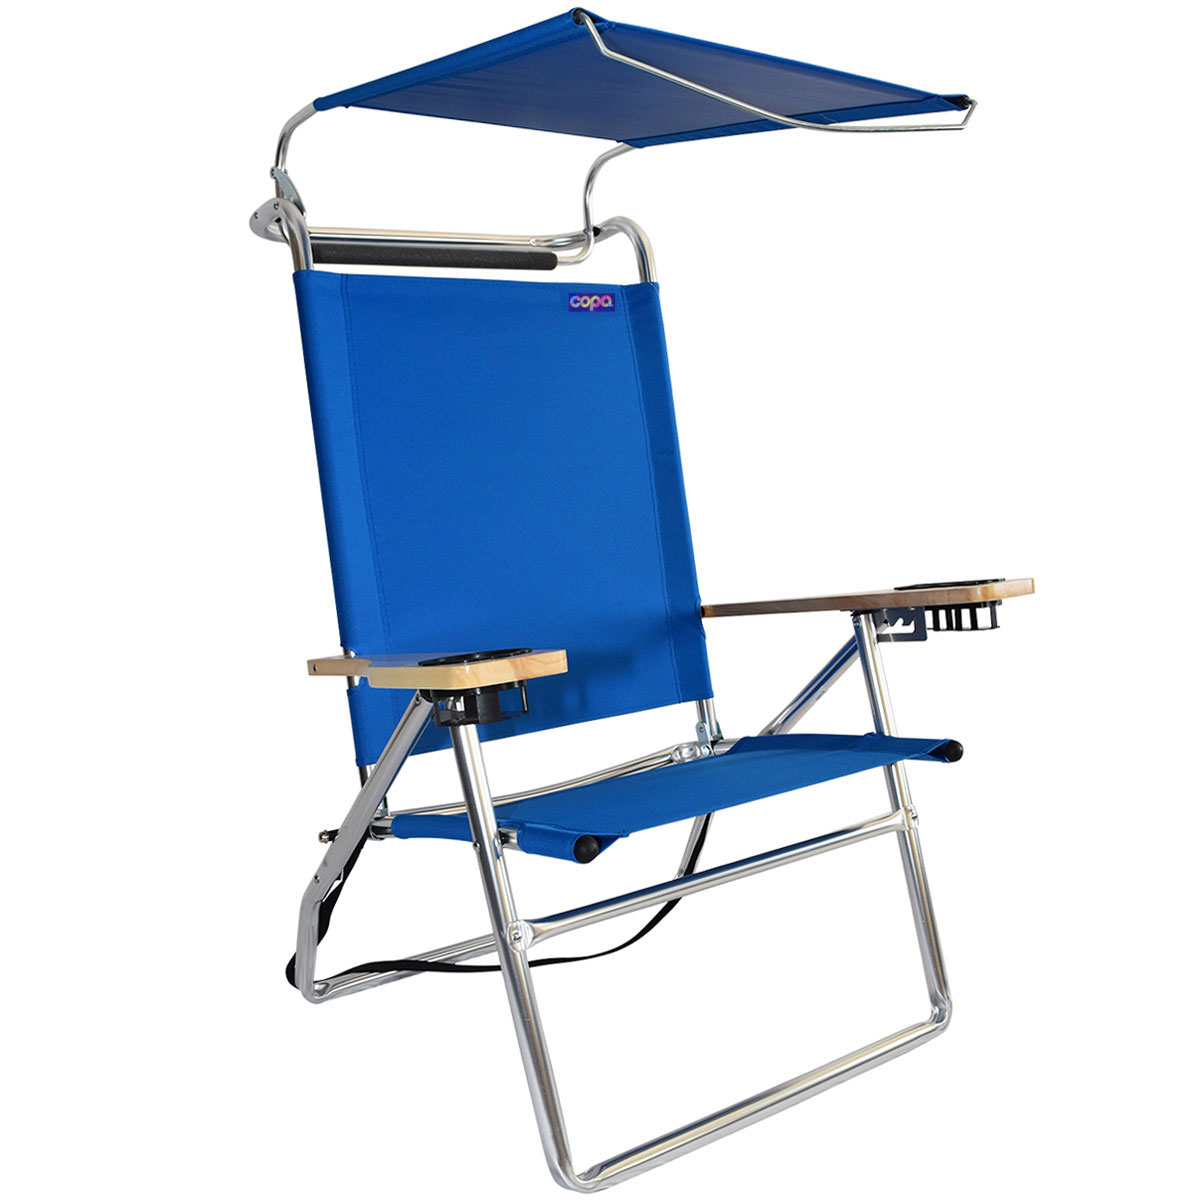 Beach Chairs Walmart Deluxe 4 Position Aluminum High Beach Chair With Canopy